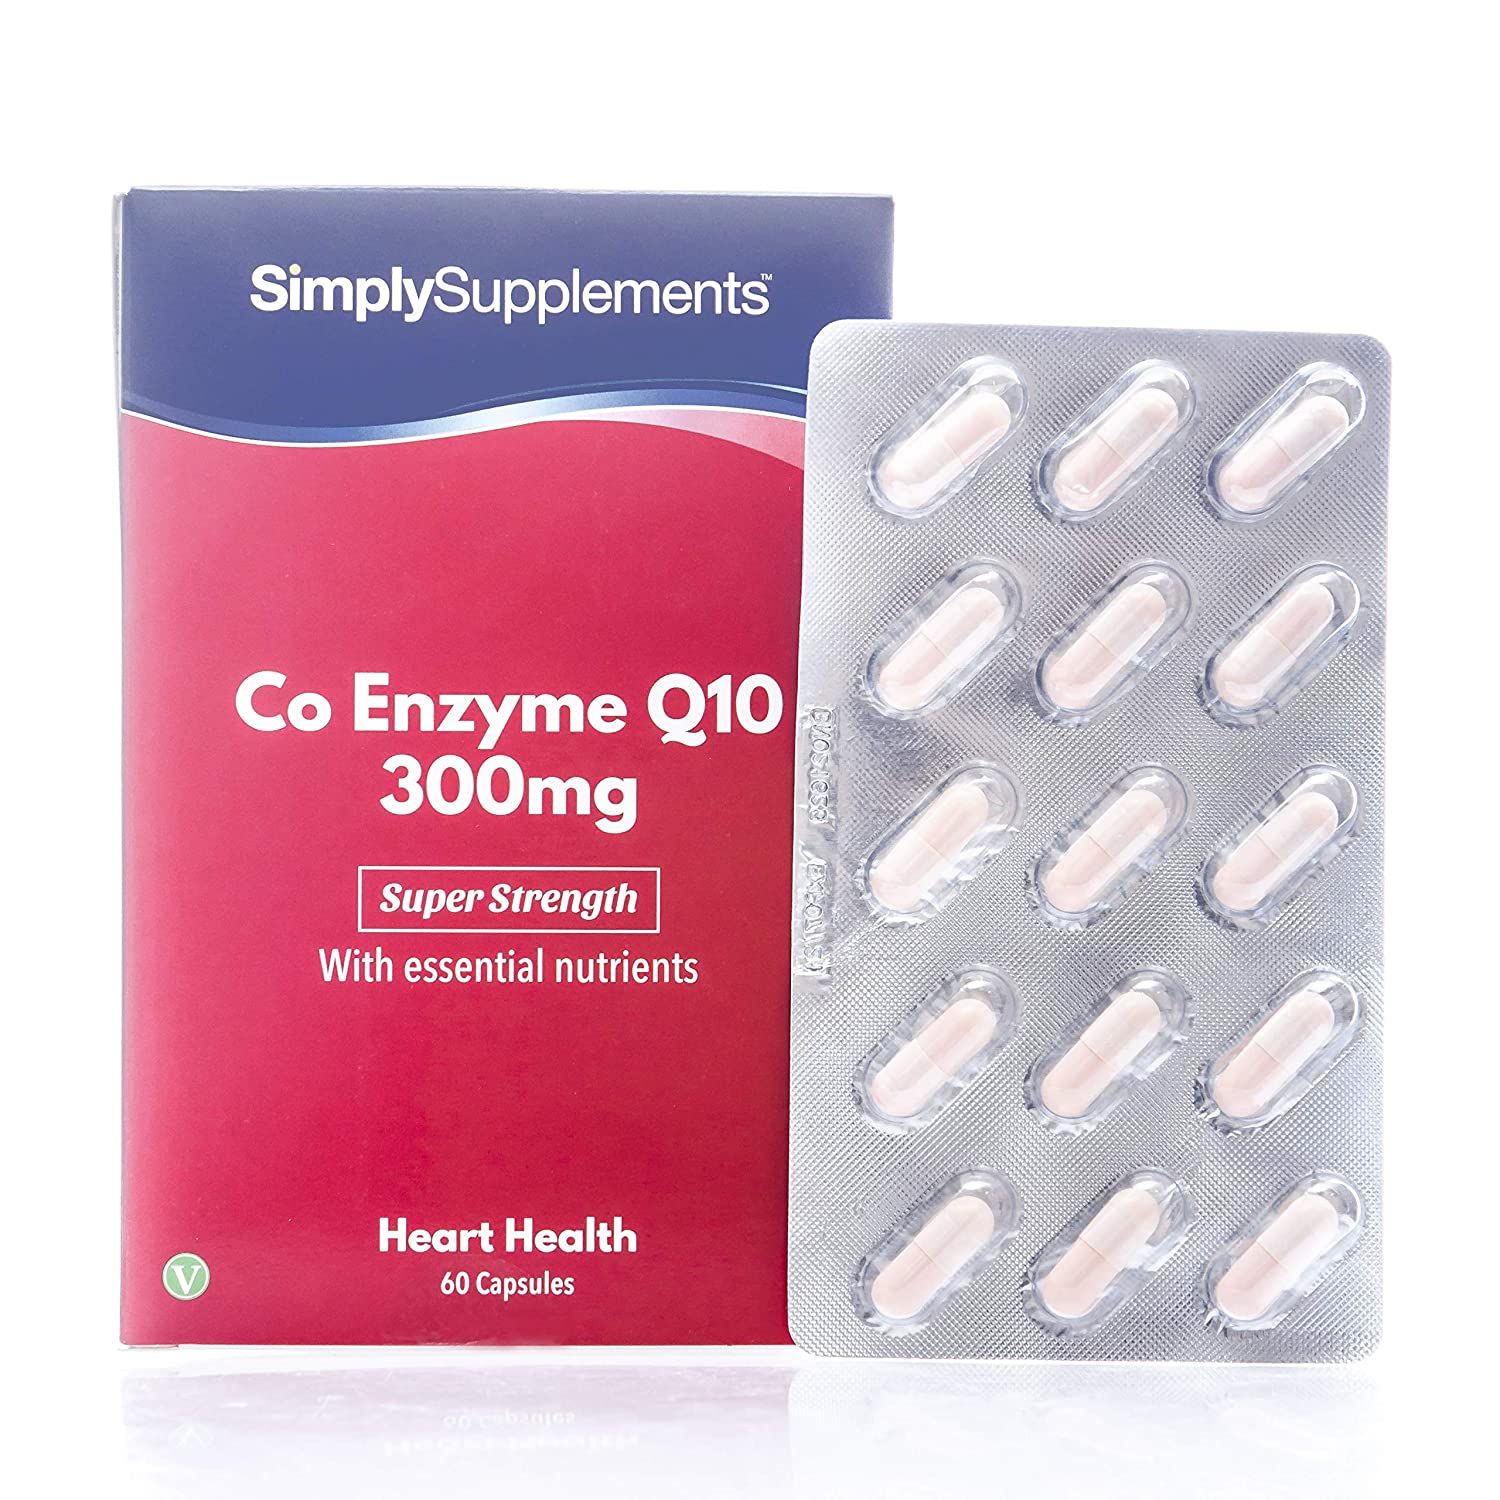 Vitaminas liposolubles coenzimas